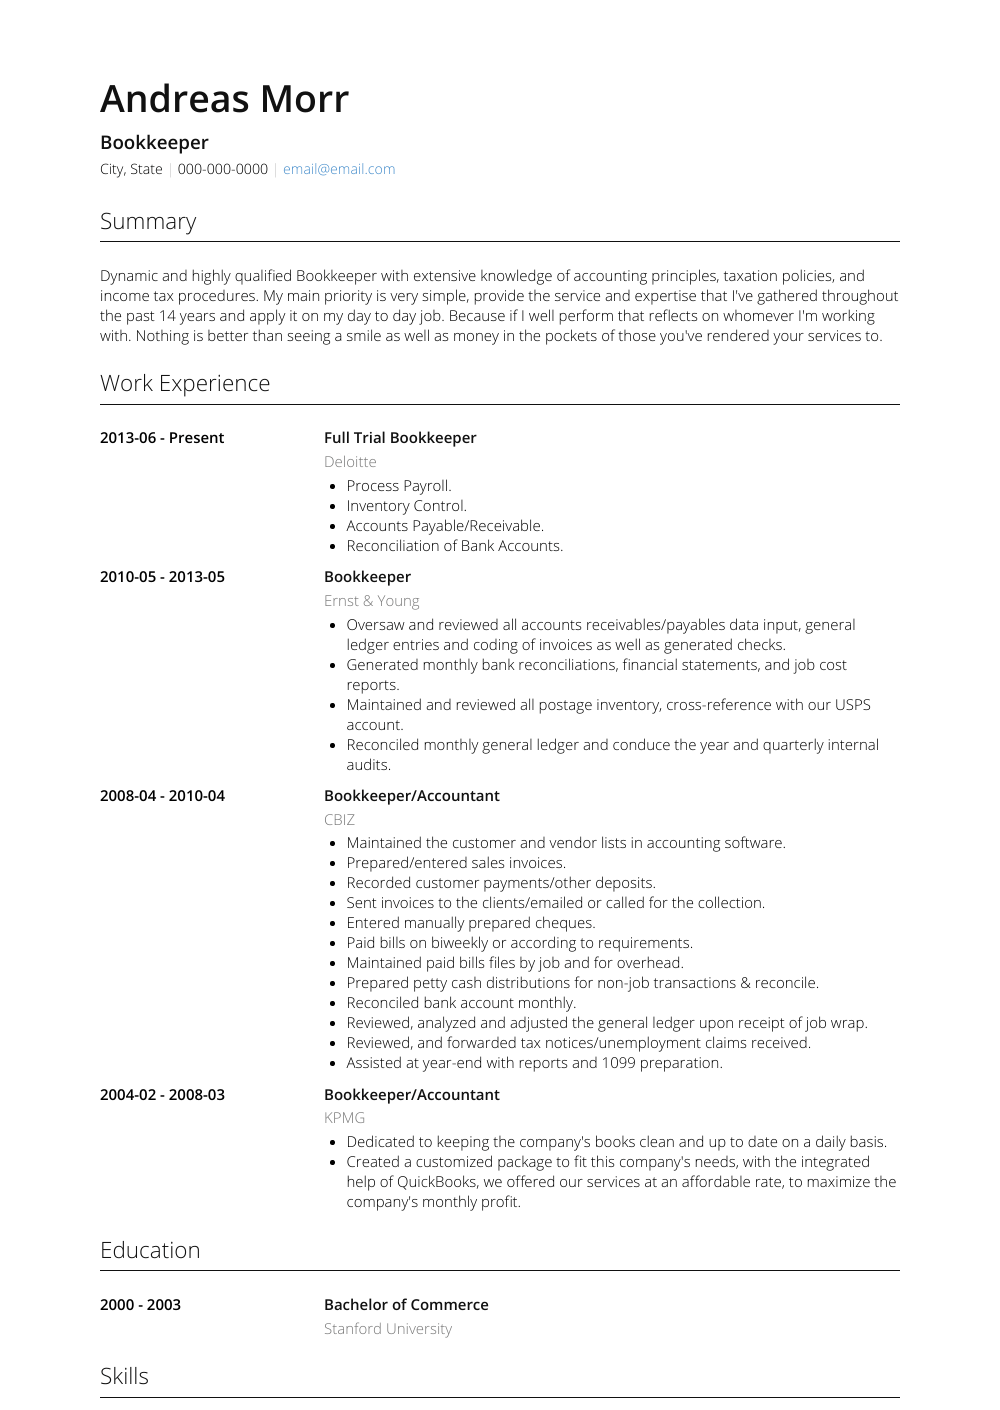 Bookkeeper Resume Sample and Template